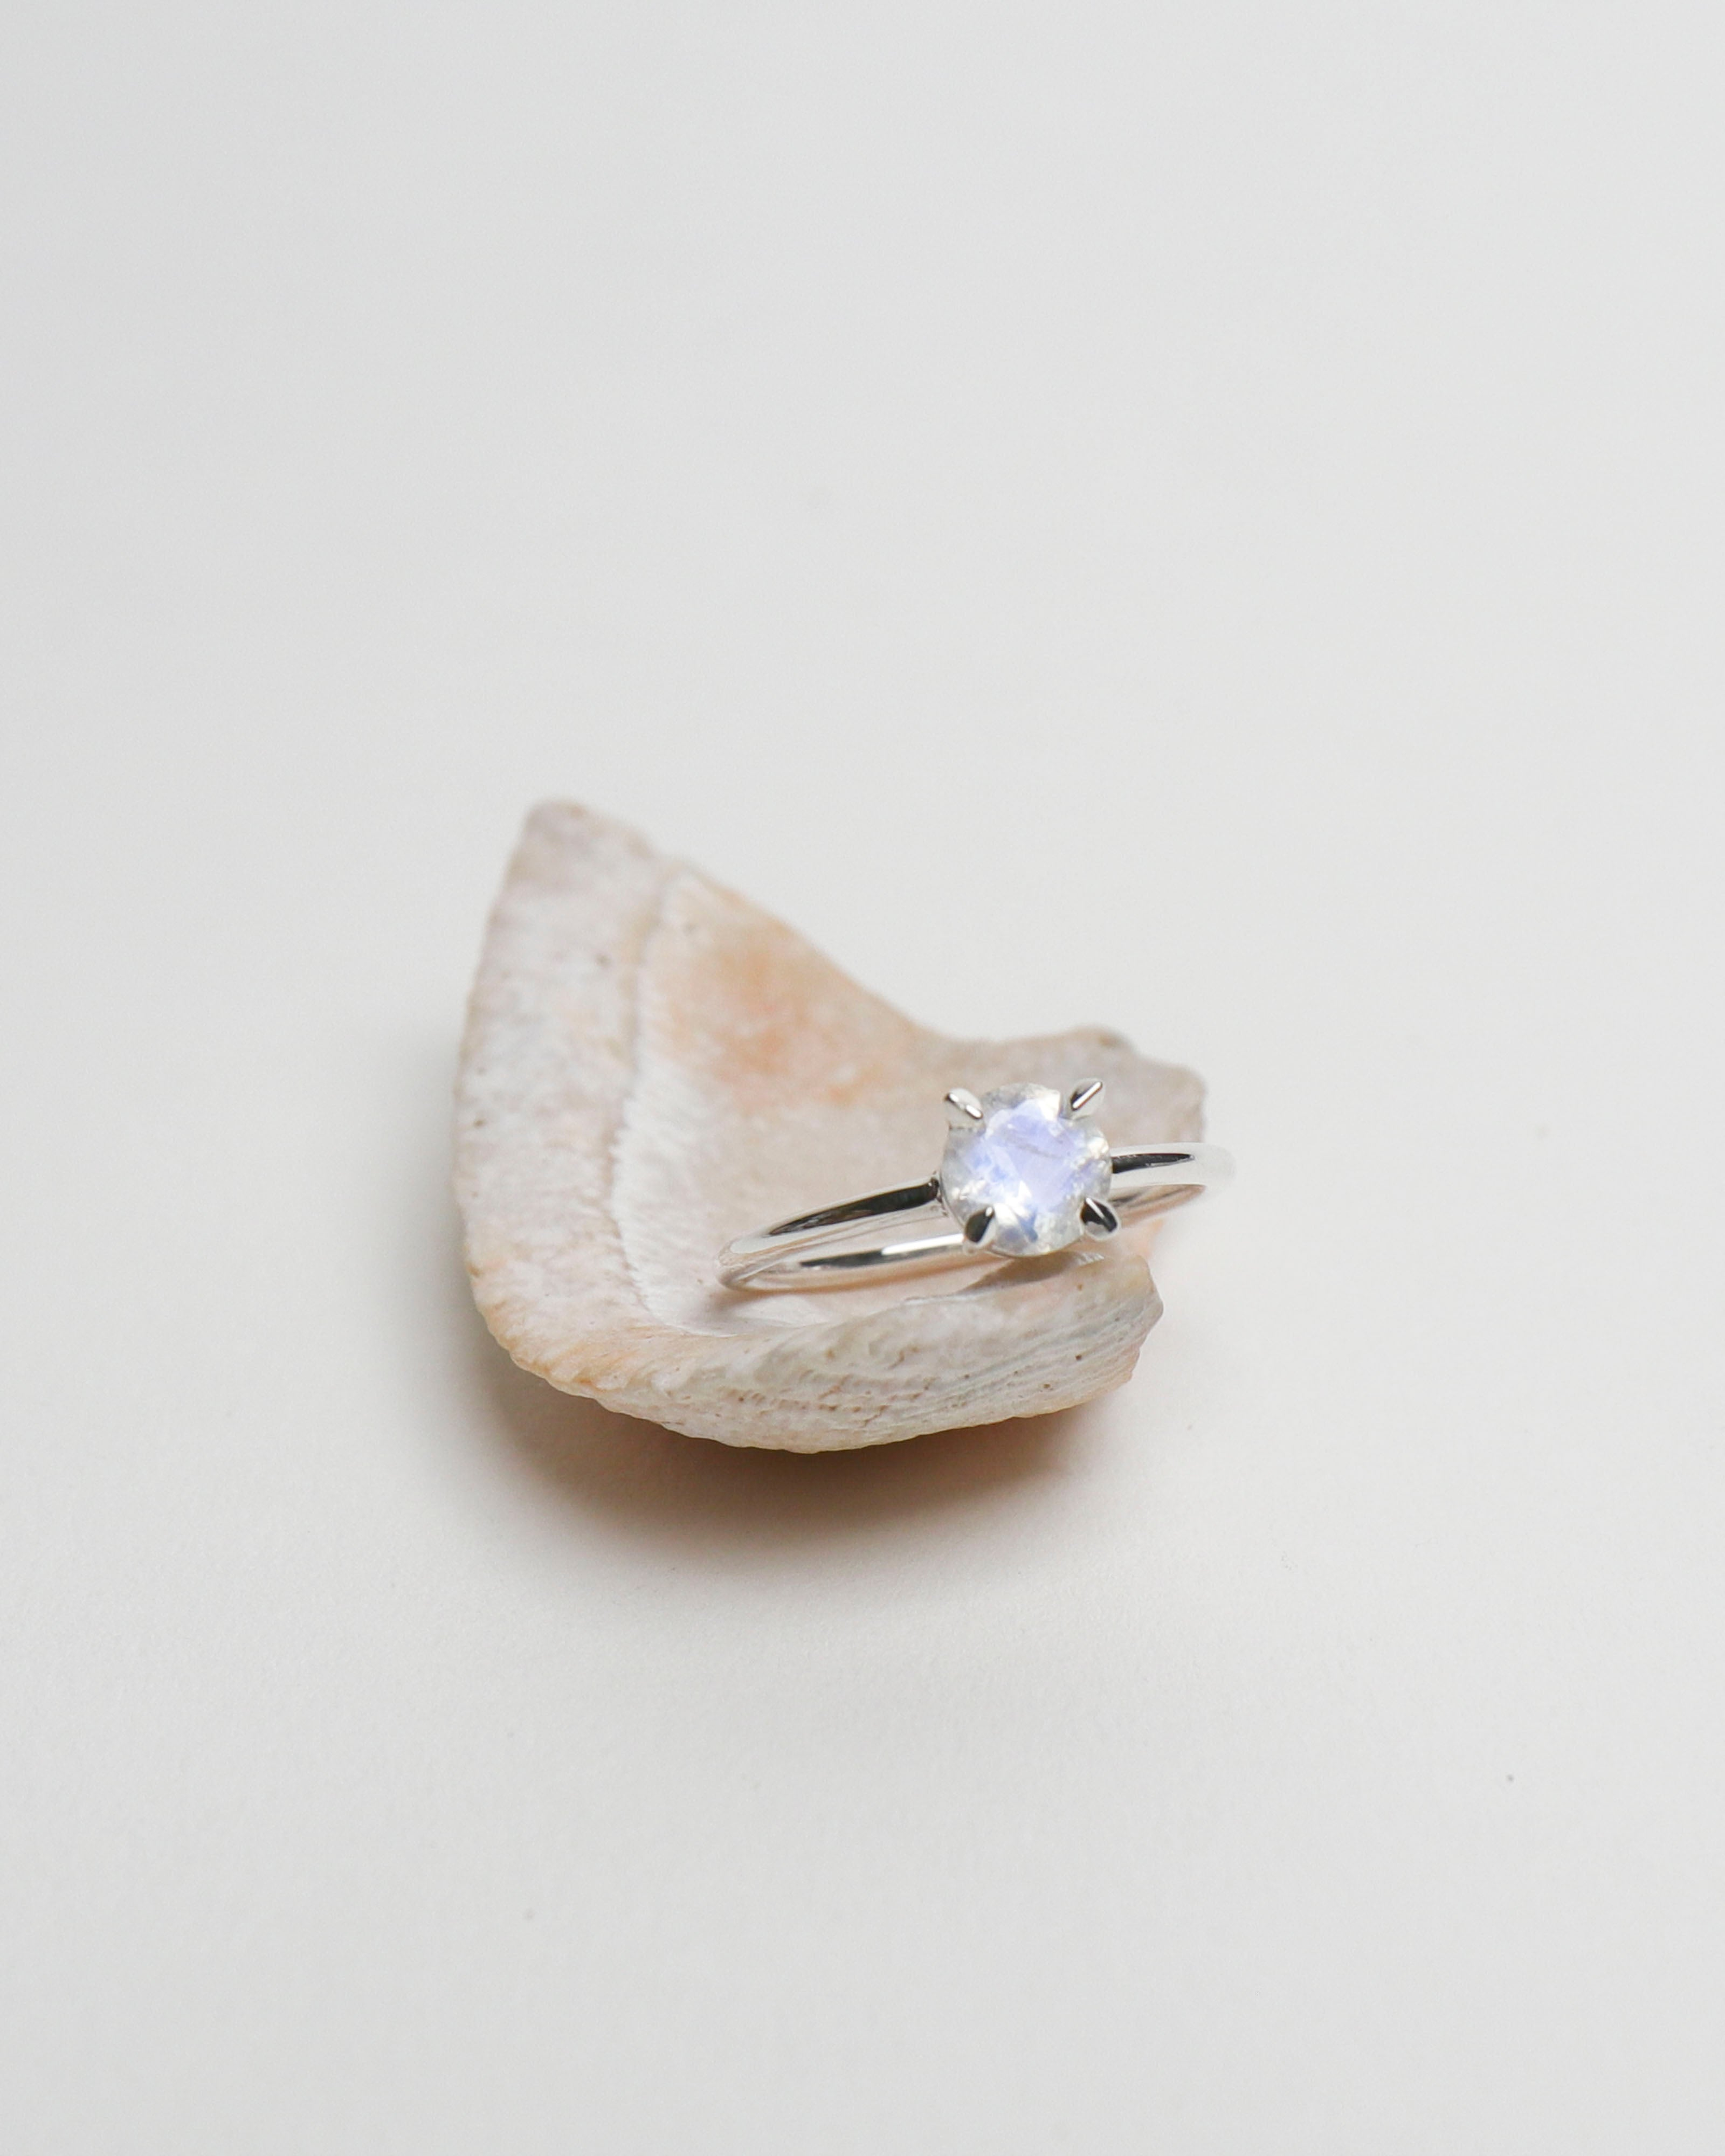 6mm Round Moonstone Ring [US6.5]